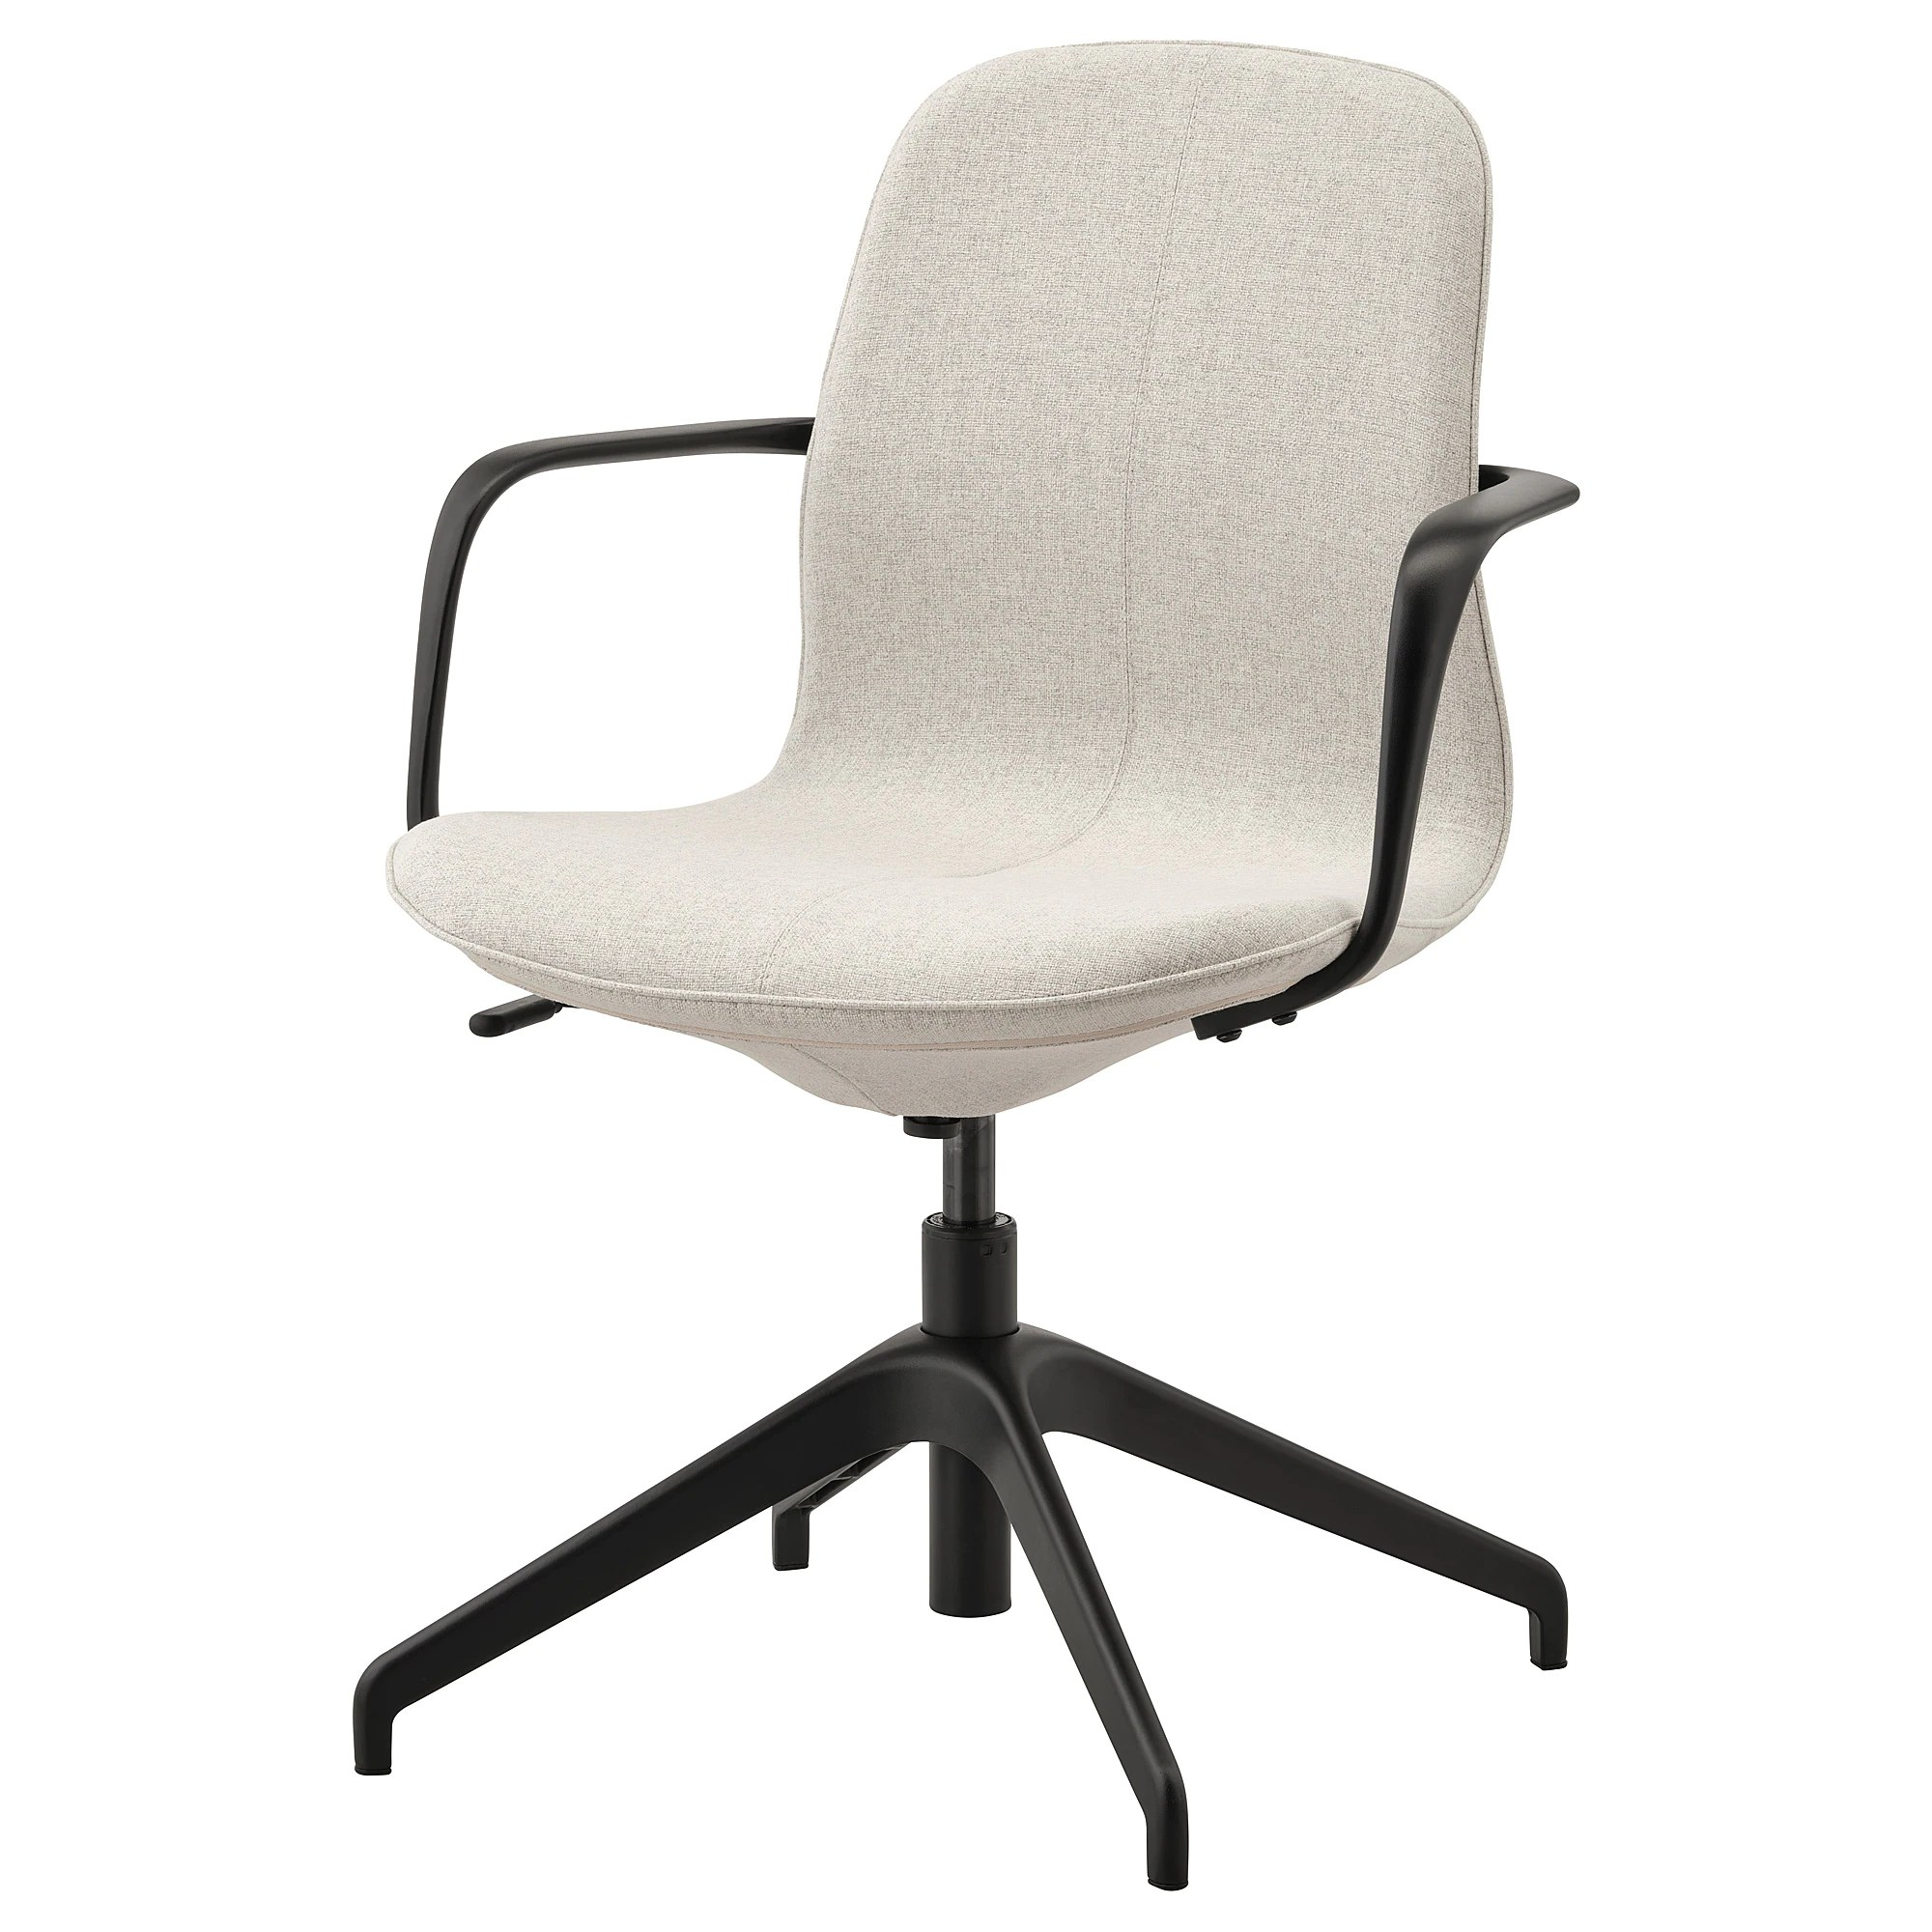 How To Adjust Office Chair Conference Chair With Armrests LÅngfjÄll Gunnared Beige Black